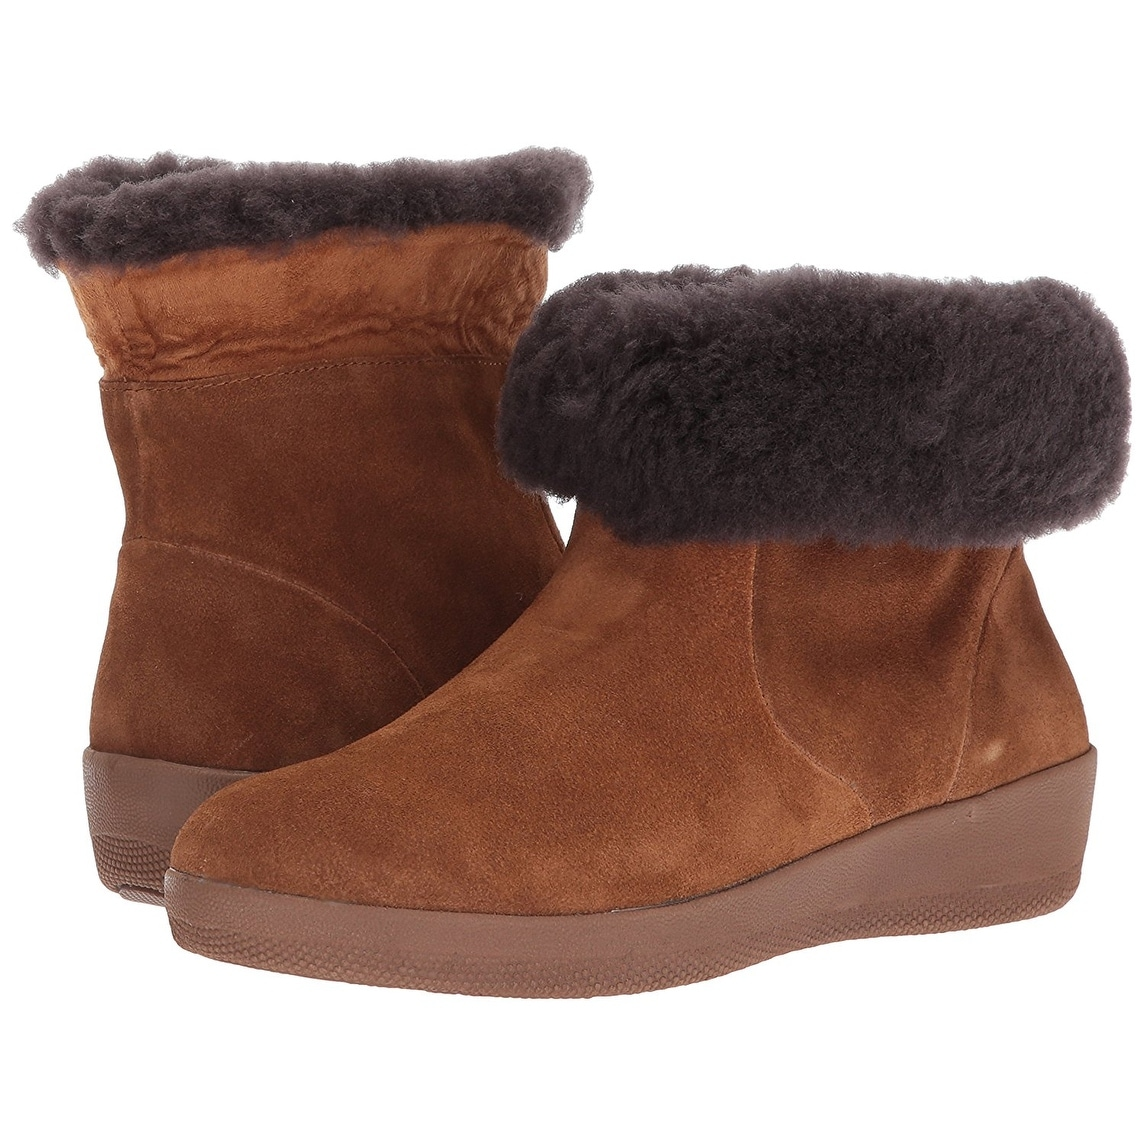 4124ab86763a58 Shop FitFlop Womens J73 Closed Toe Ankle Cold Weather Boots - Free Shipping  Today - Overstock - 22338295